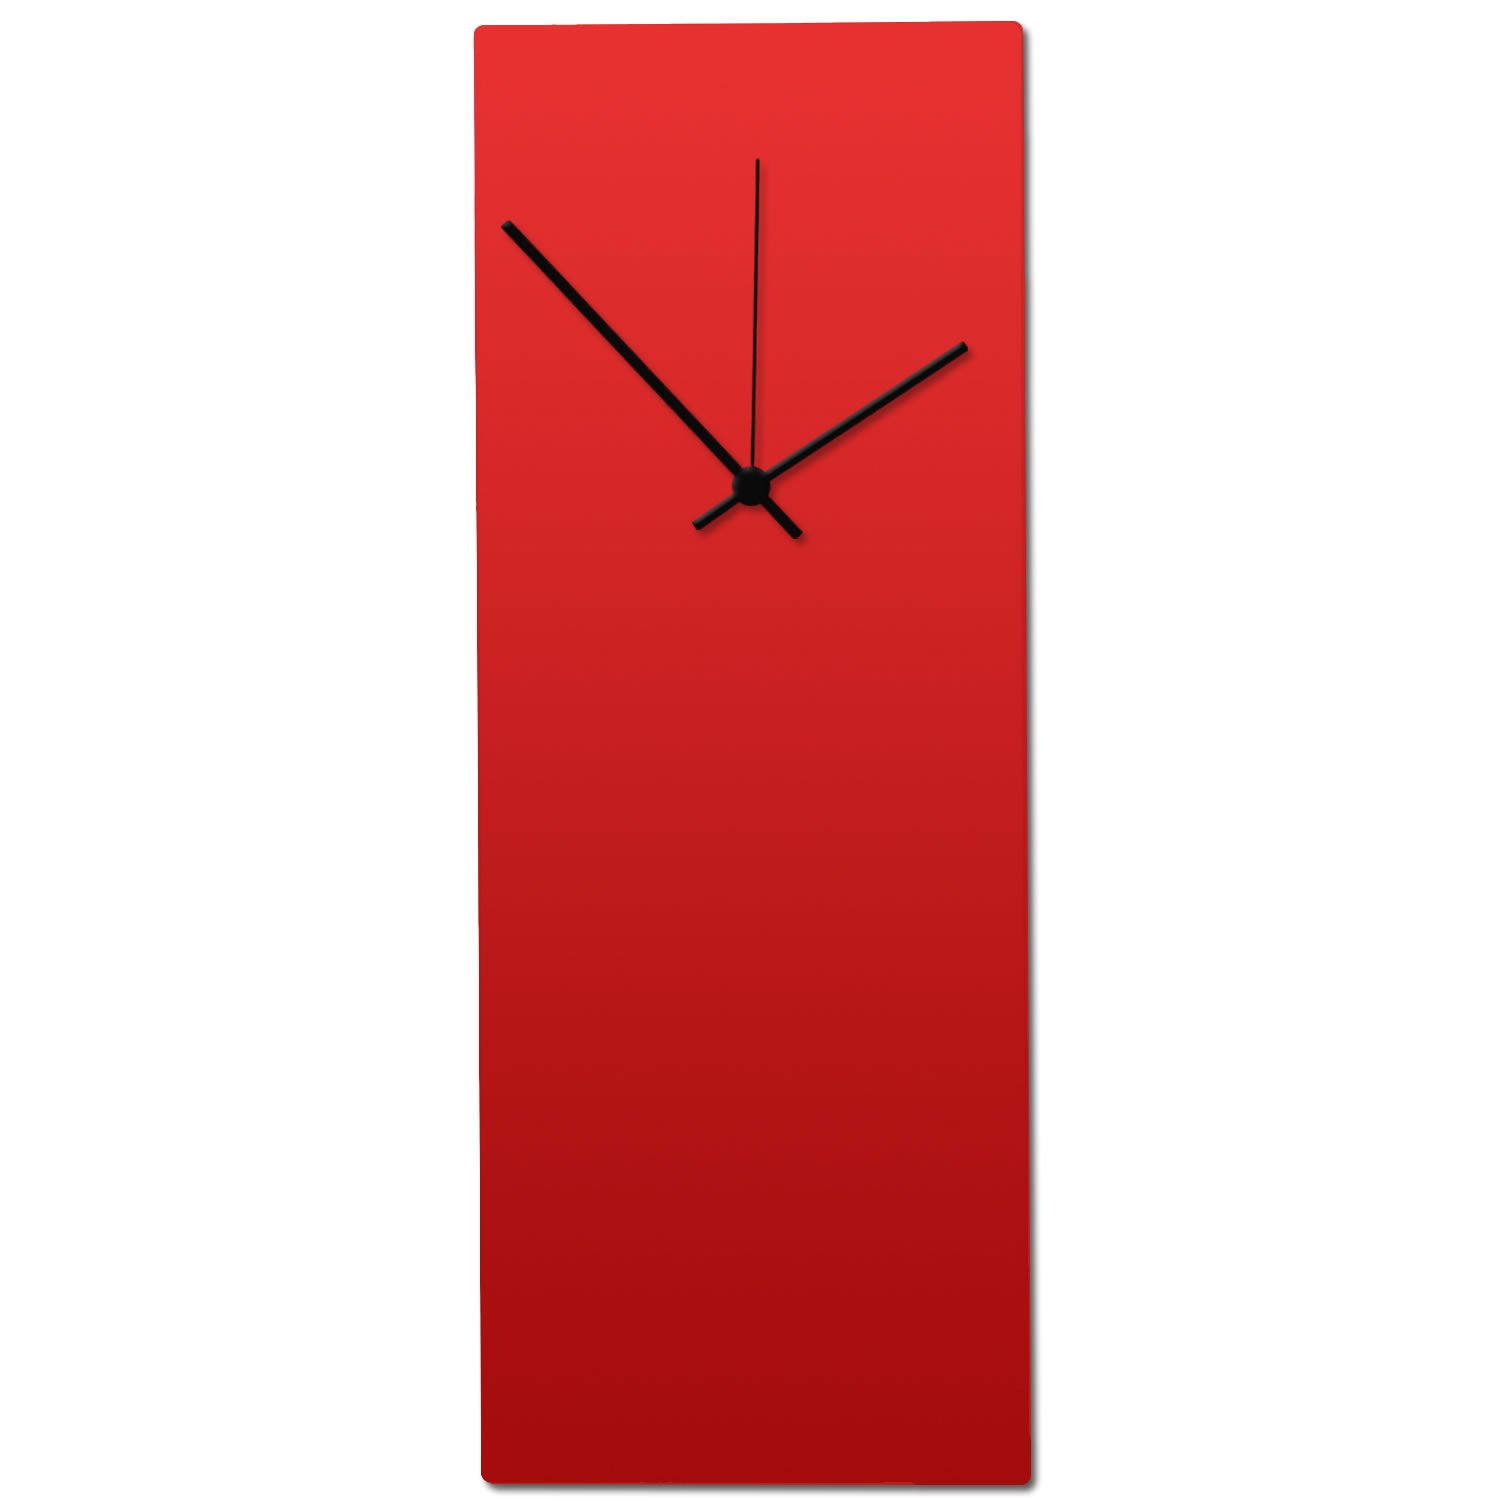 Metal Art Studio Redout Clock Contemporary Wall Decor, Small, Red Face/Black Hands